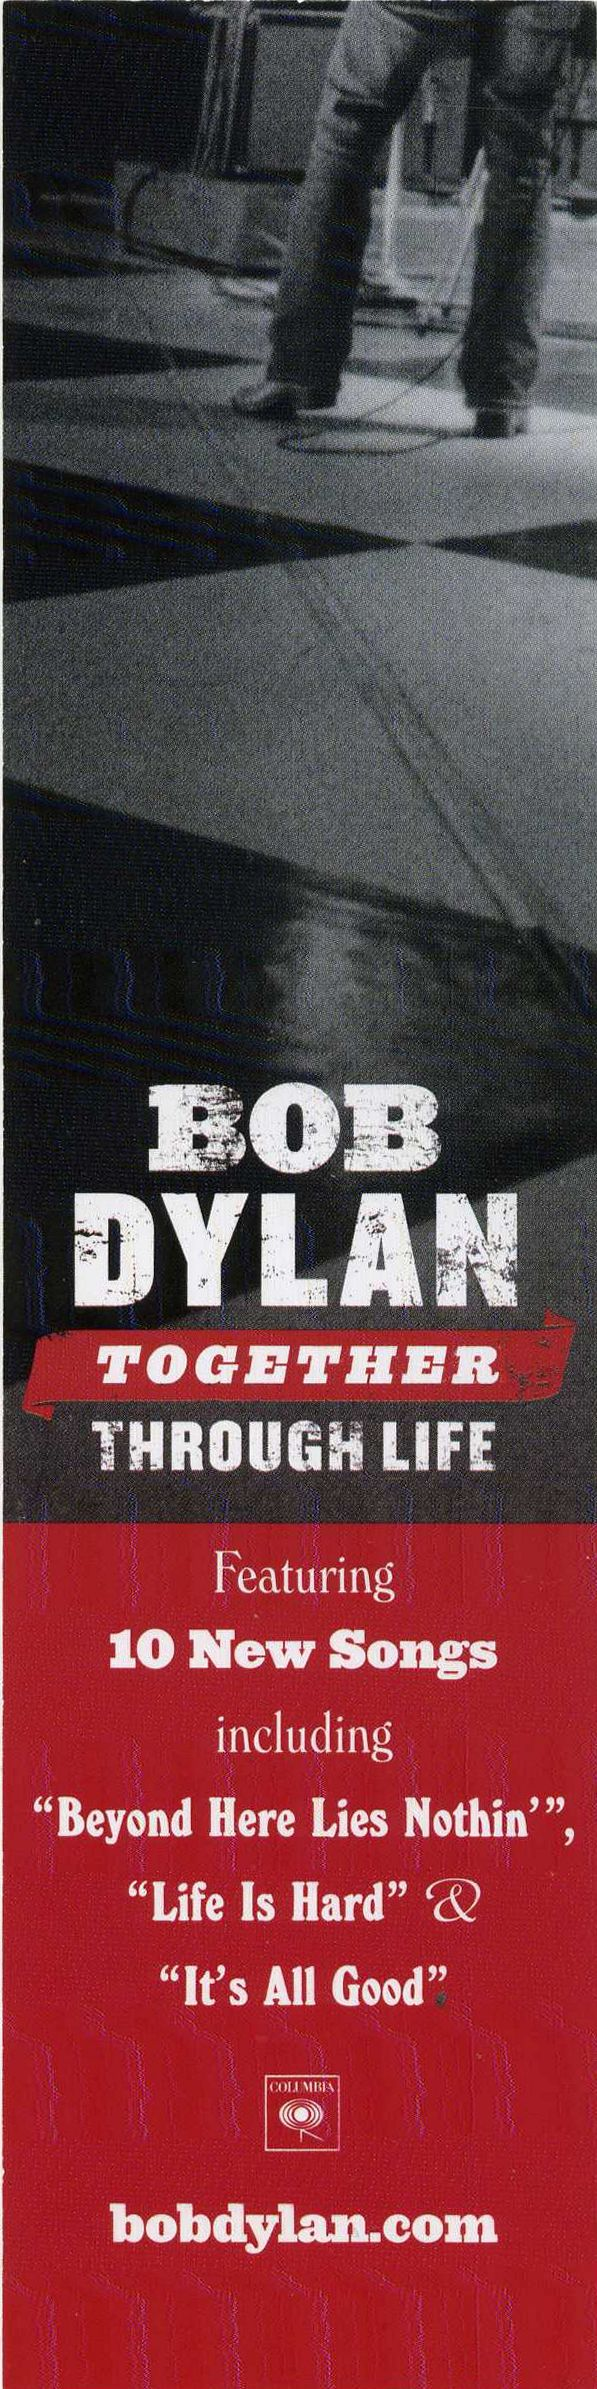 bob dylan bookmark together through life